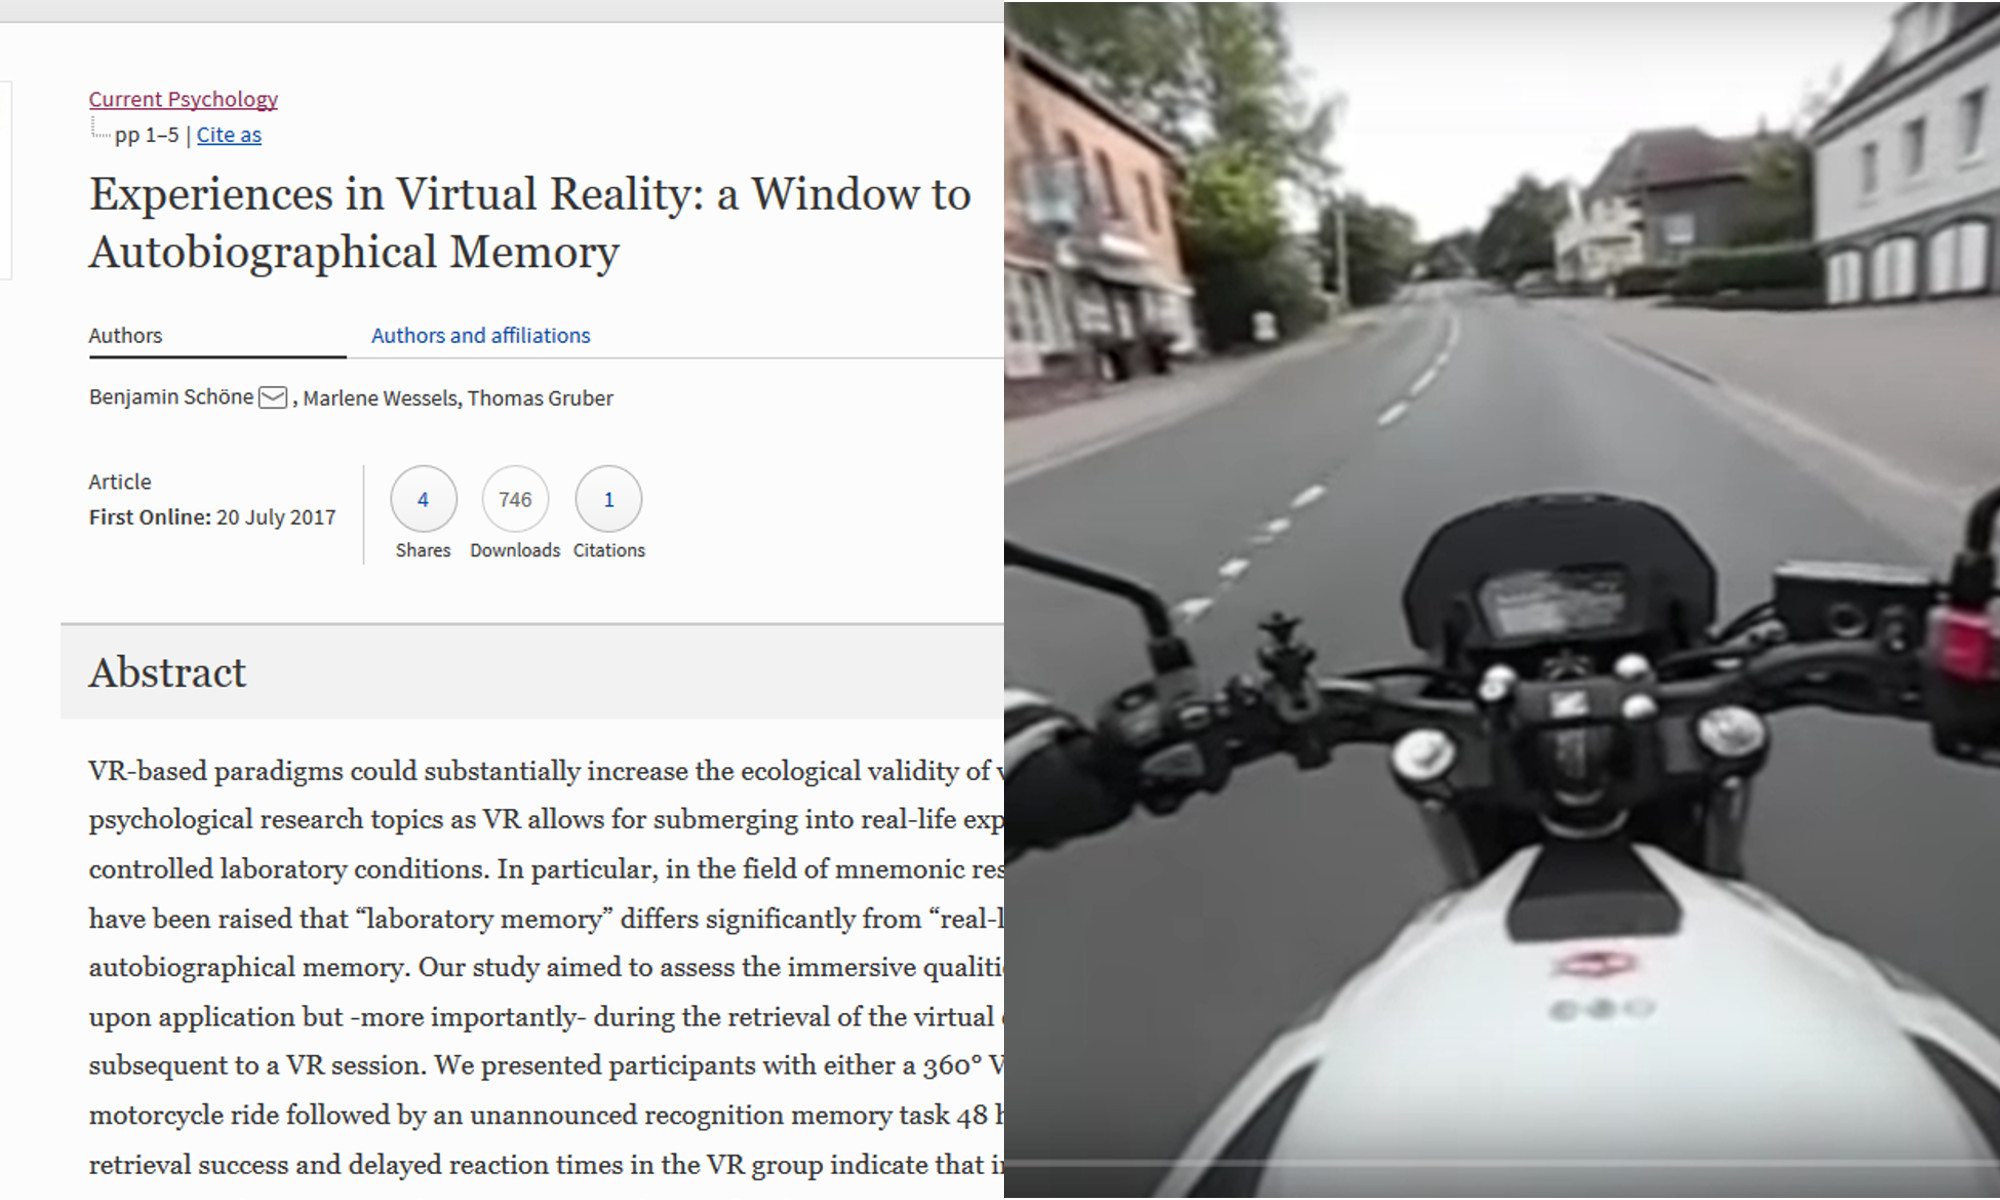 360 video, 2x more recall